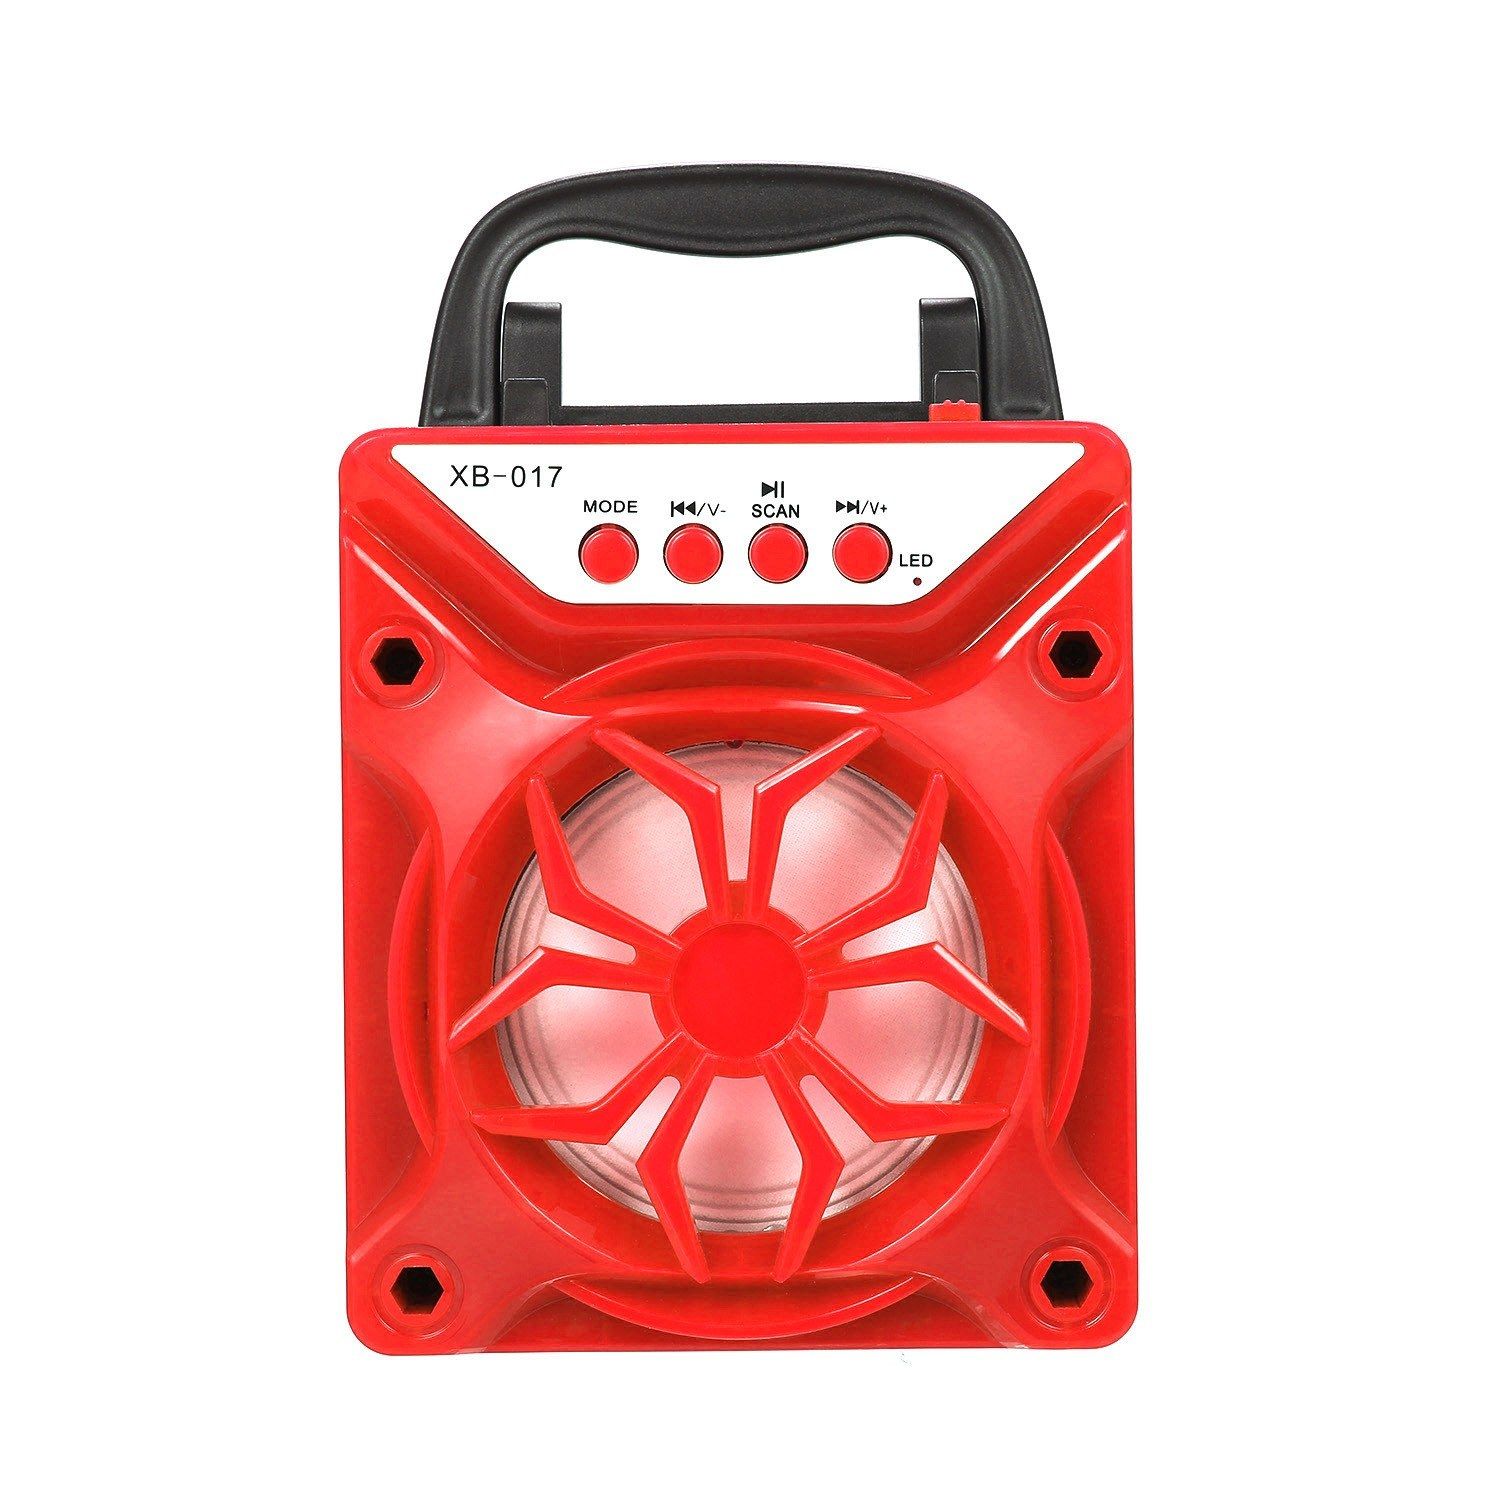 Portable BT Outdoor Speaker Support TF Card Square Dance Audio Red